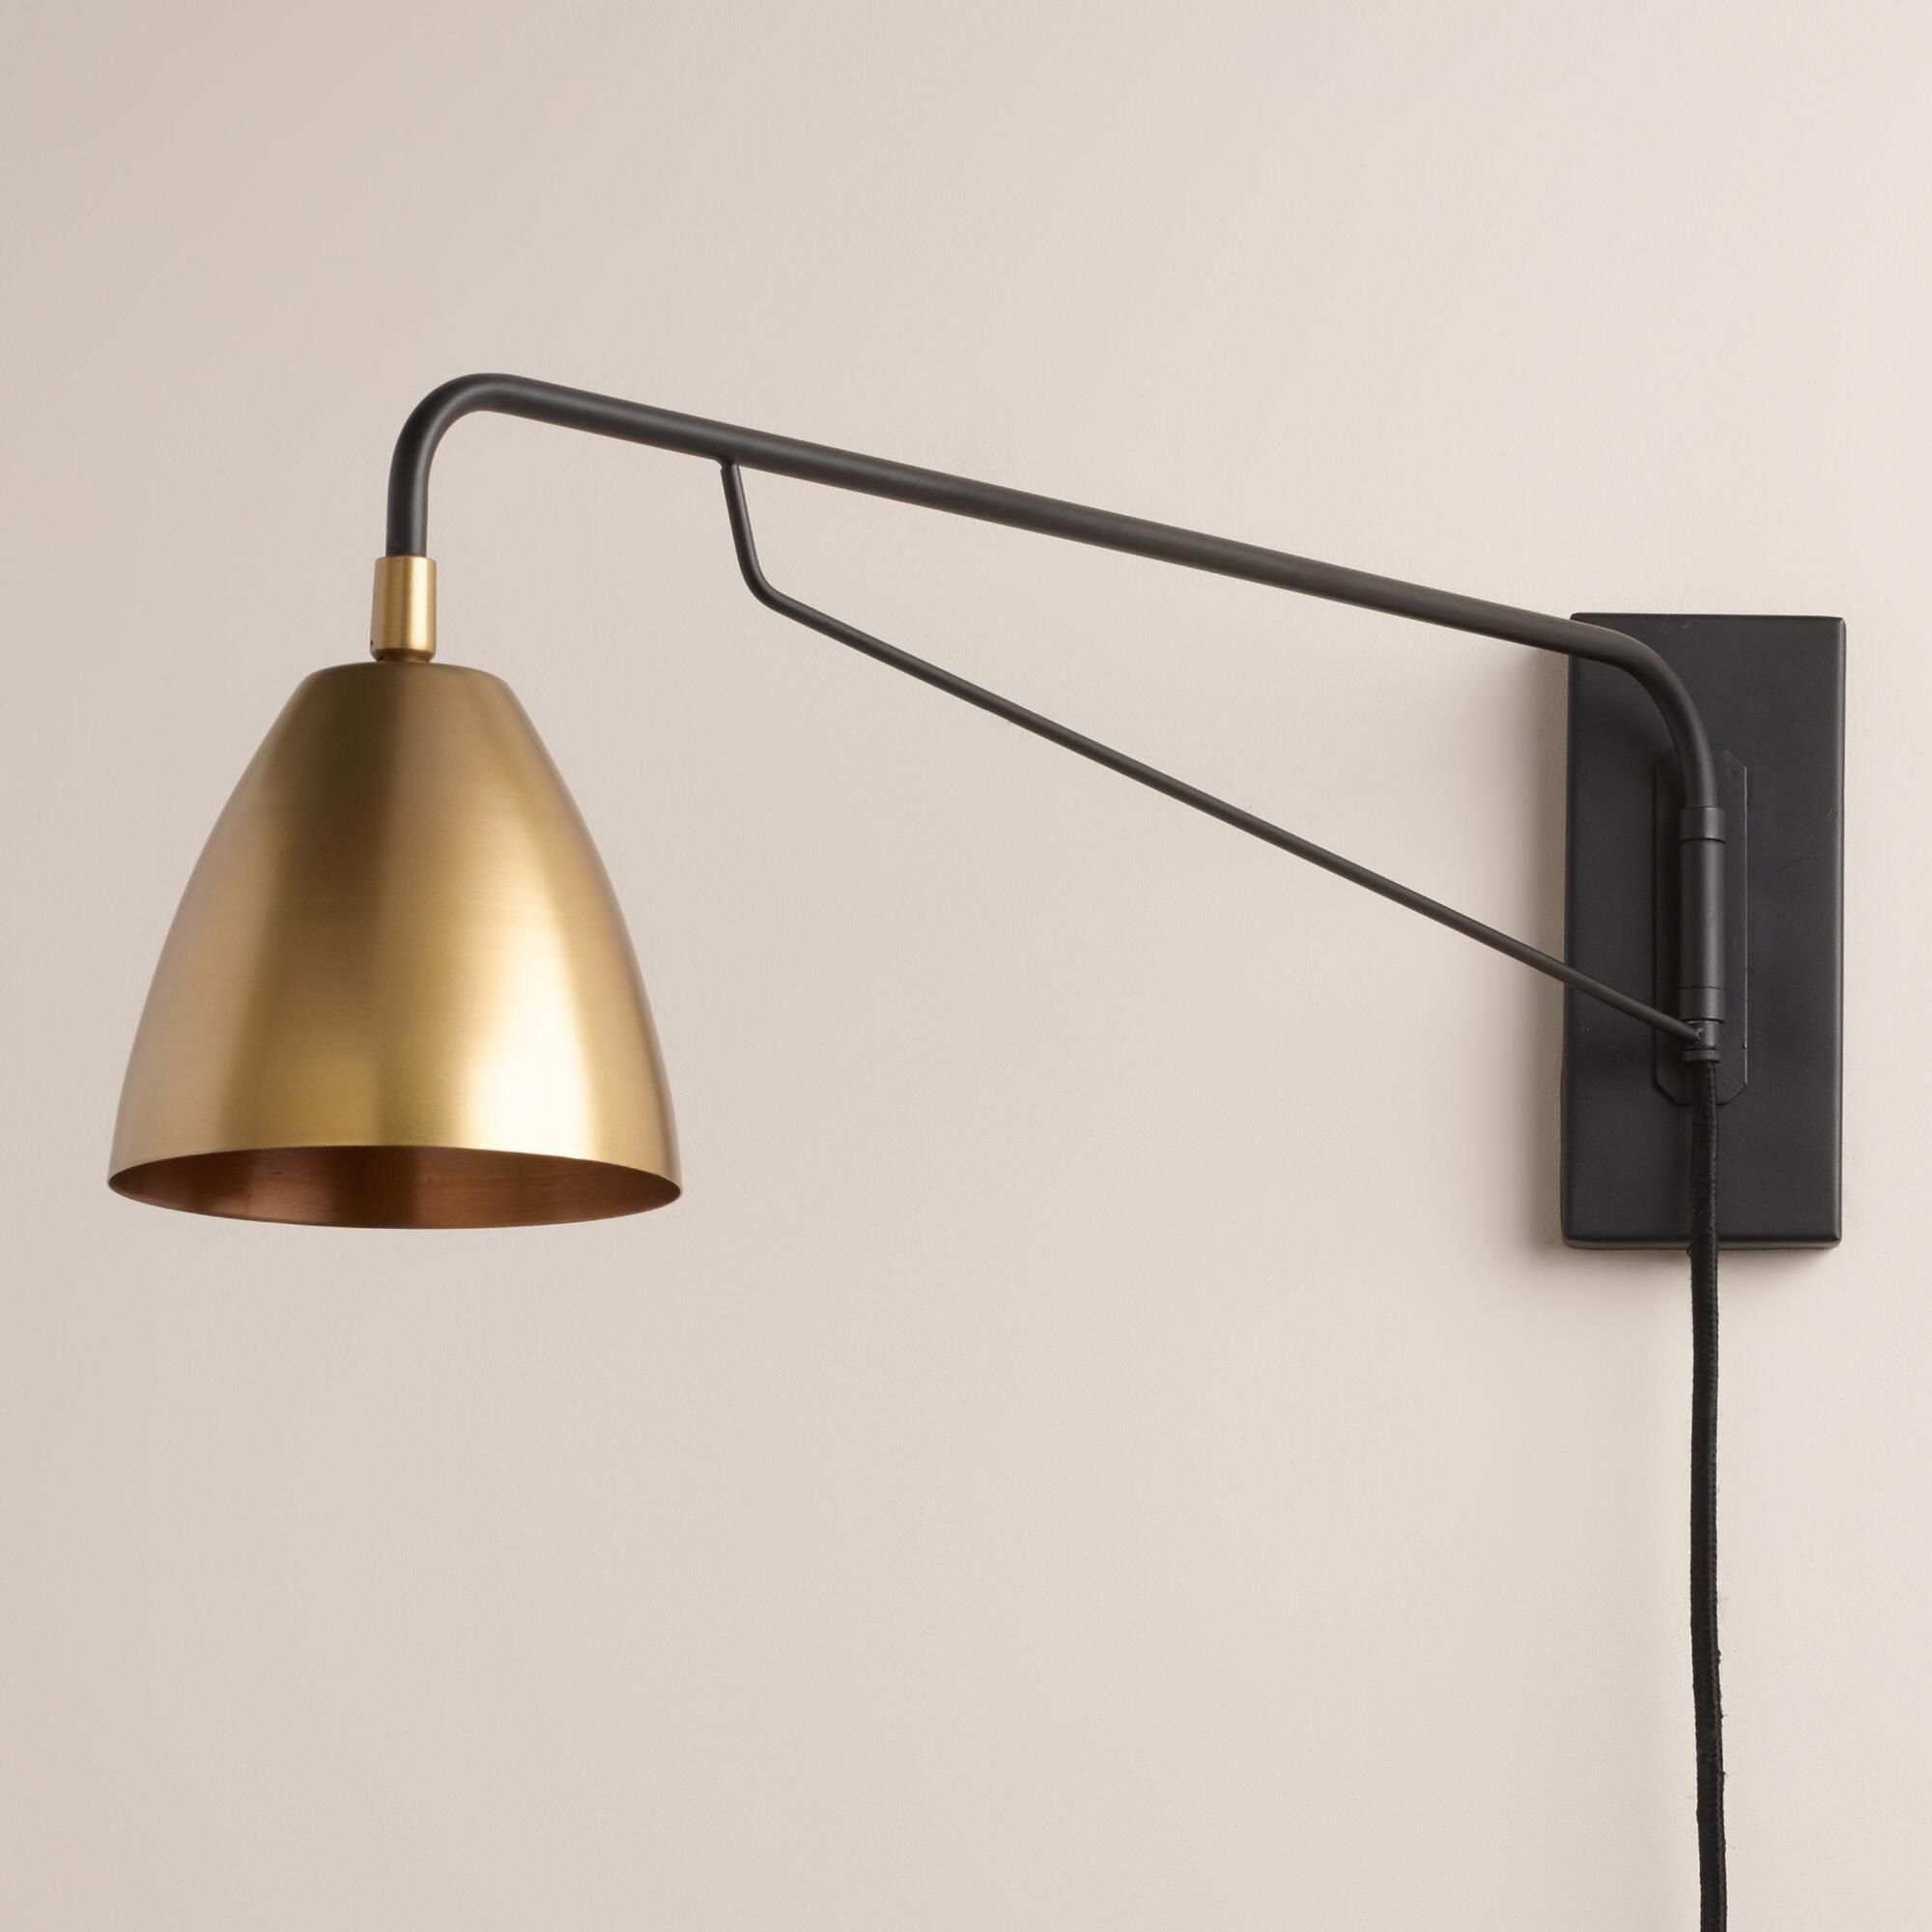 Vintage Bedside Wall Lamps : Brass Nook Pivoting Wall Sconce Mid century modern design, Lighting solutions and Antique brass